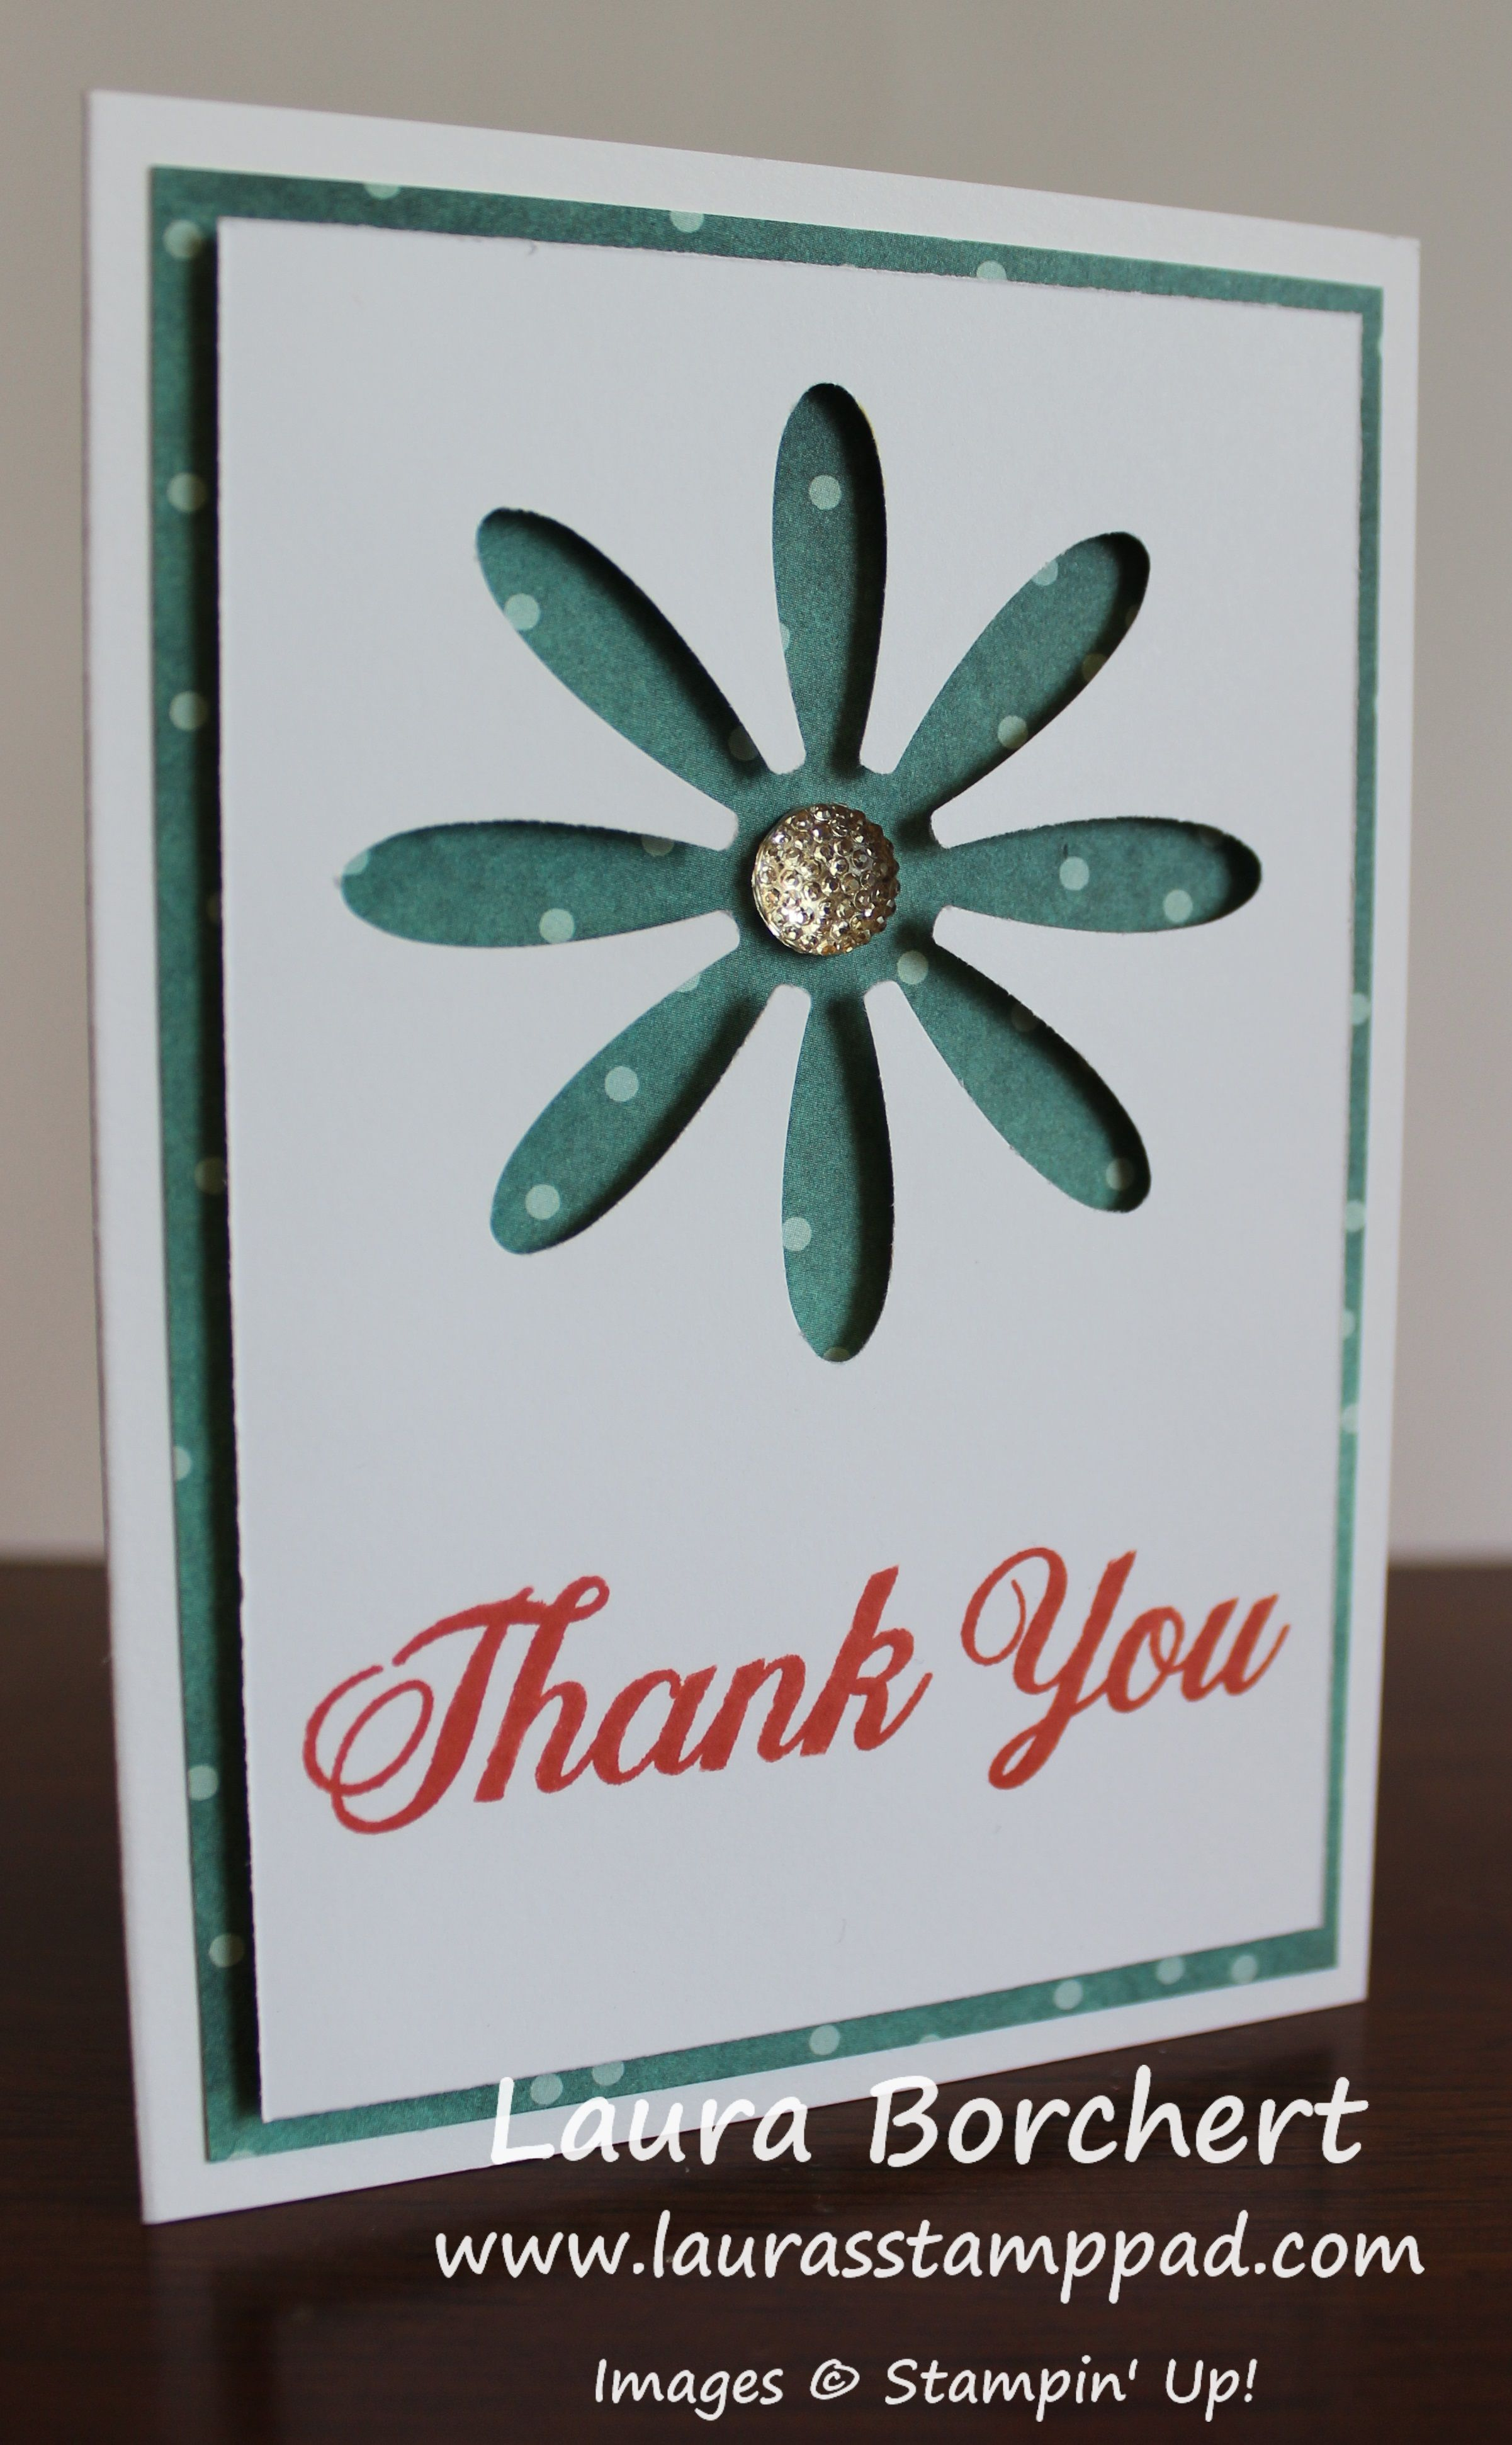 How To Create A Two In One Daisy Card Stamping Up Cards